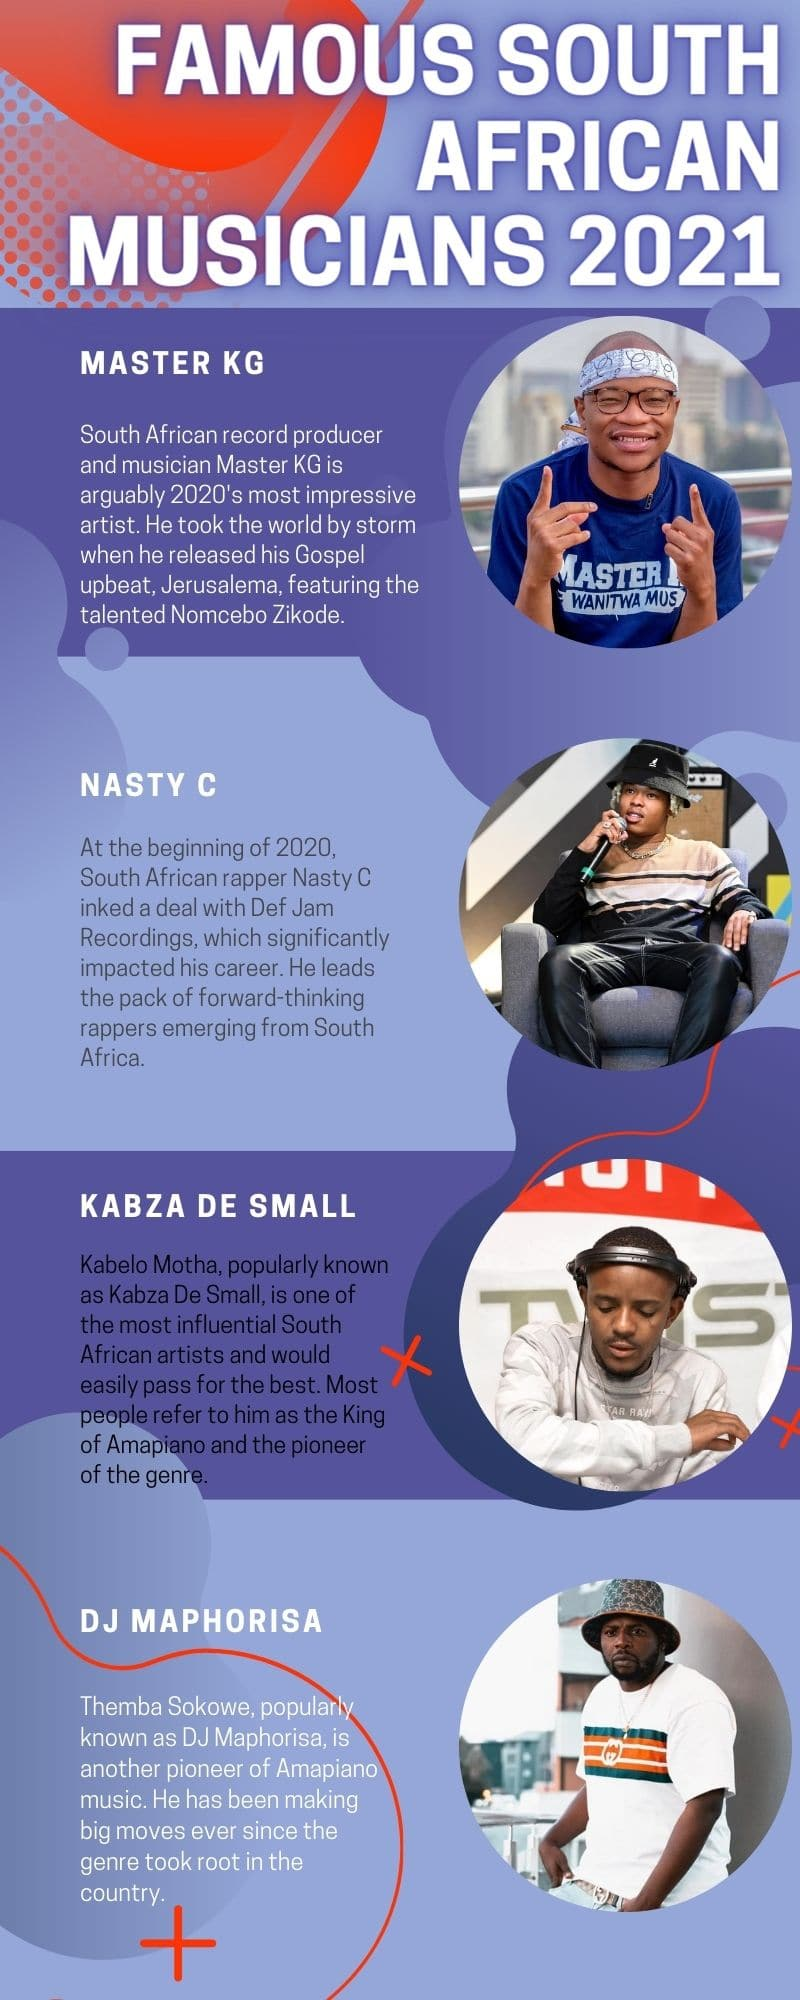 Famous South African musicians